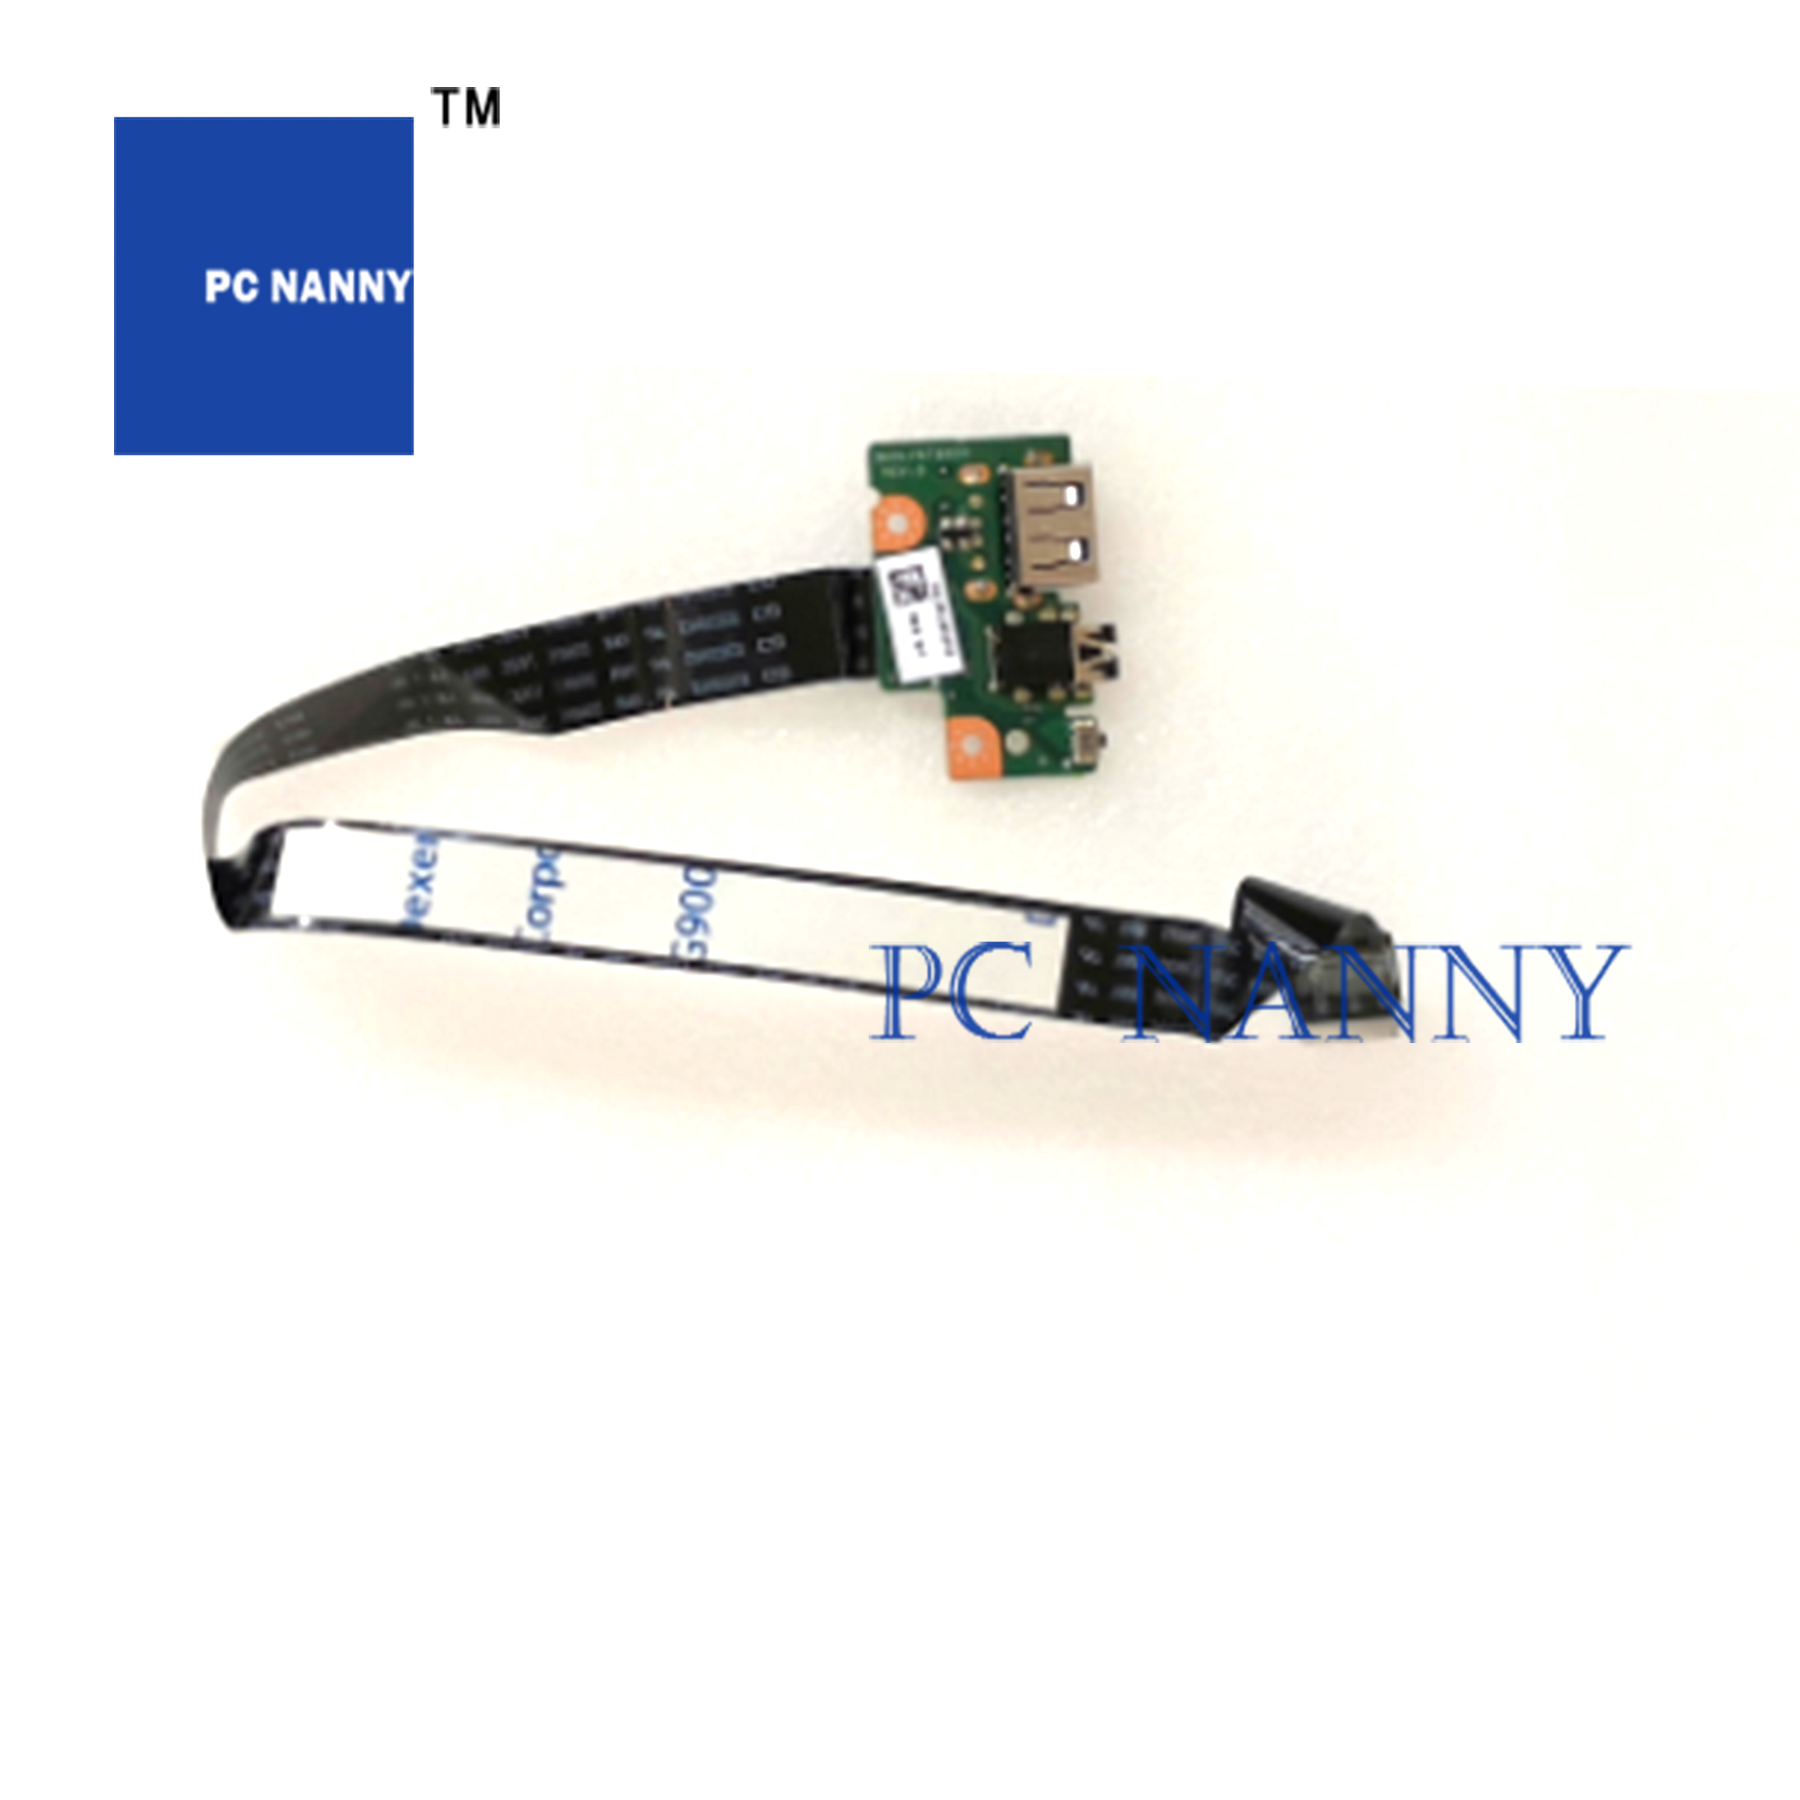 PCNANNY FOR  Lenovo V310-15 Isk Ikb Usb Board With Cable 5c50l59496 Test Good